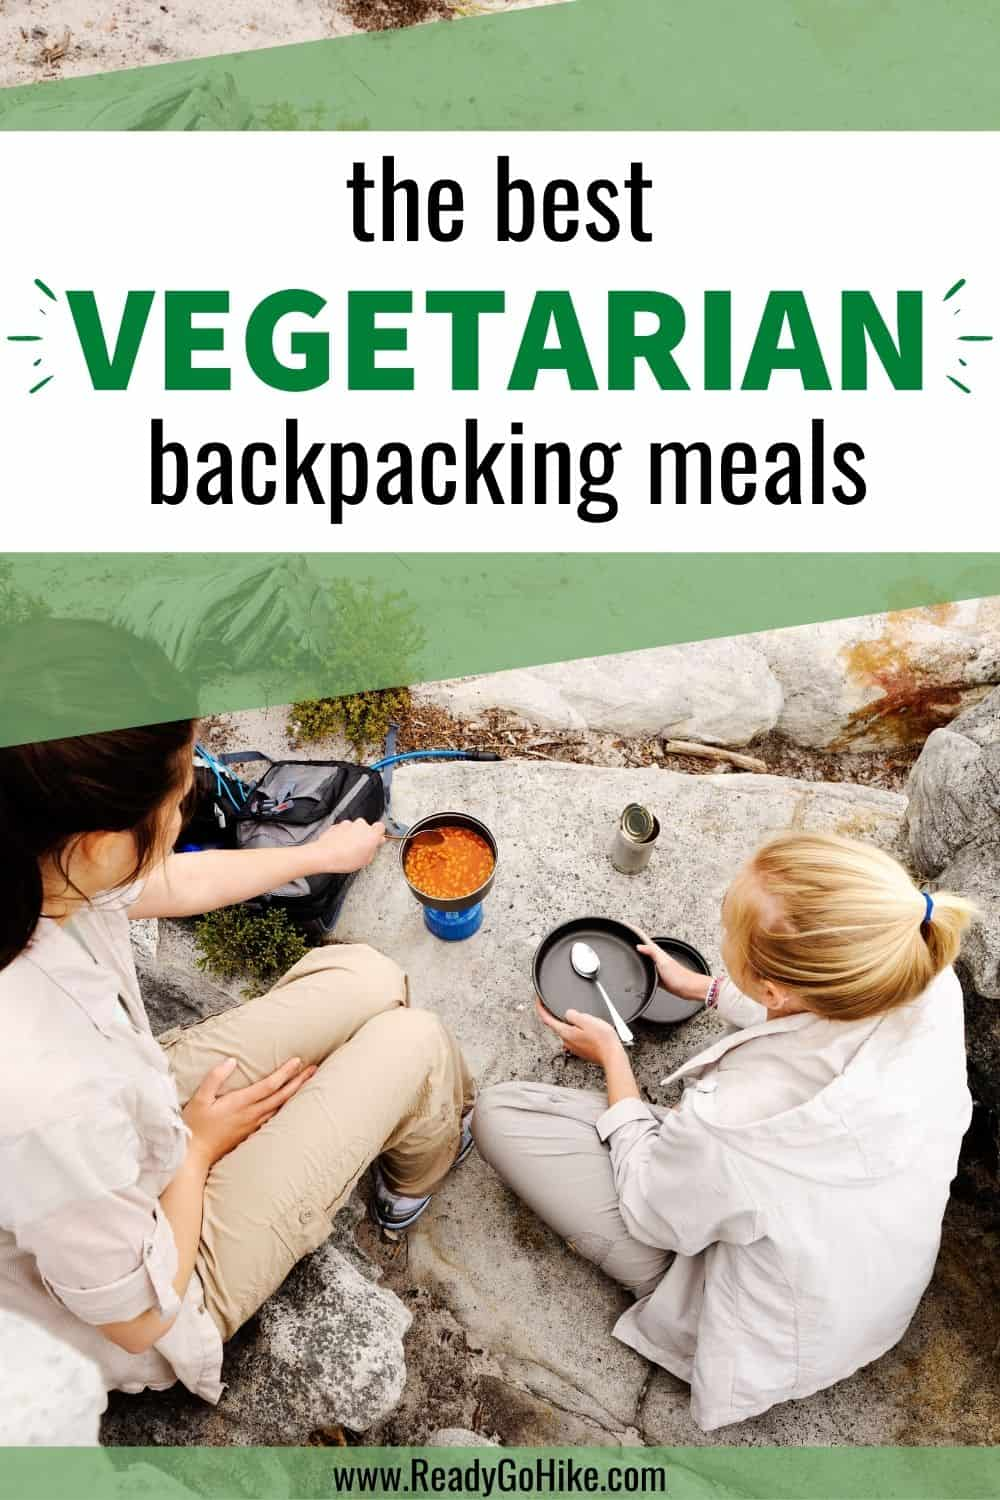 Female hikers cooking camping meal with text overlay The Best Vegetarian Backpacking Meals